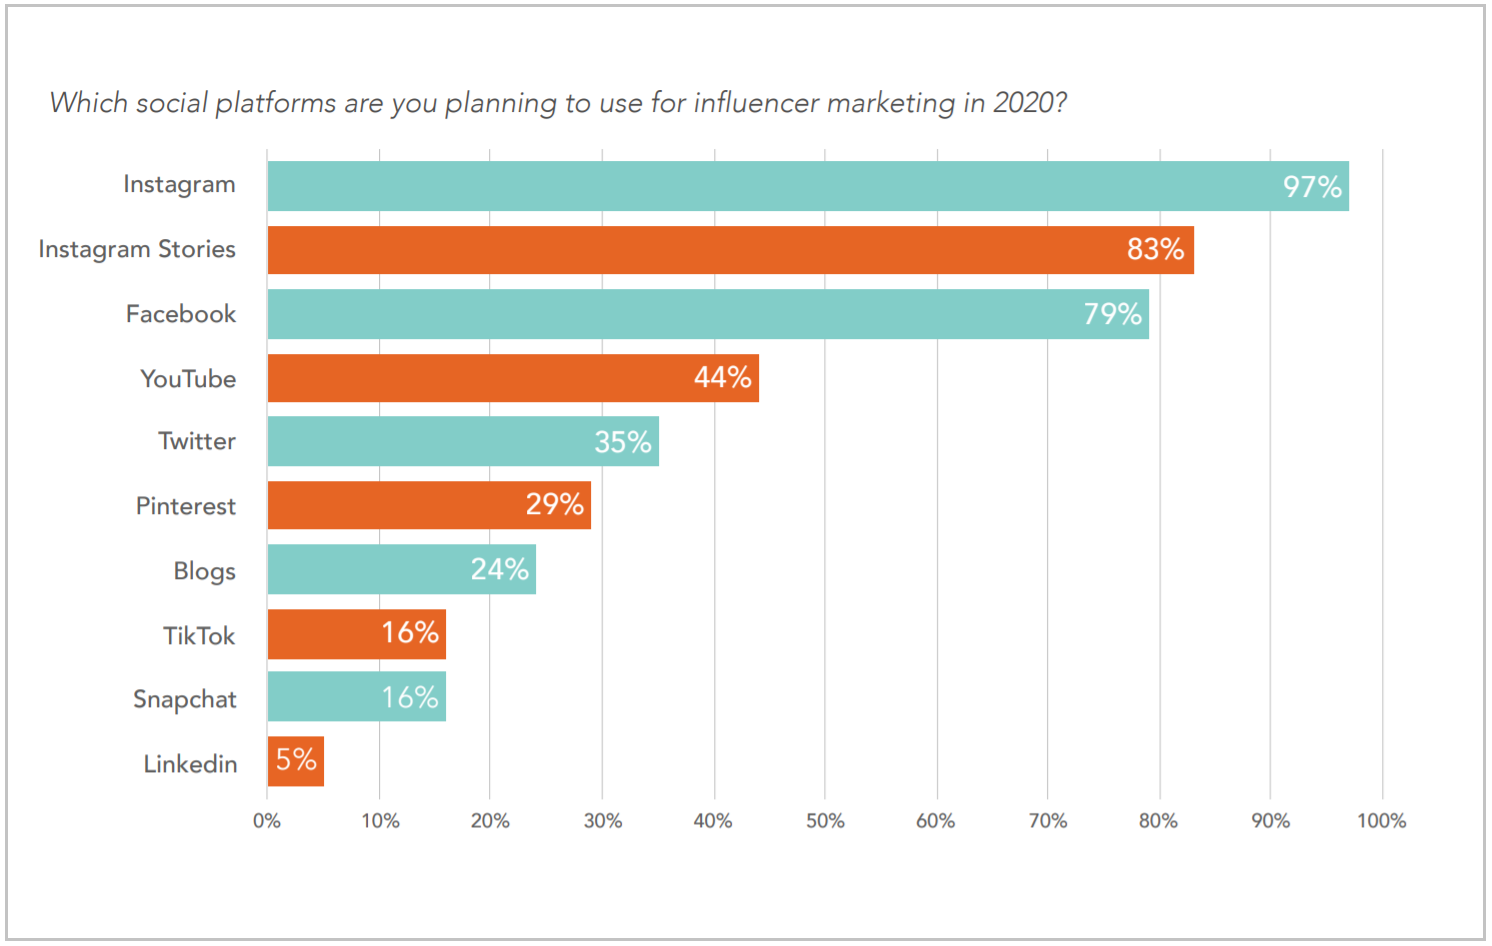 Which social media platforms are you planning to use for influencer marketing in 2020?